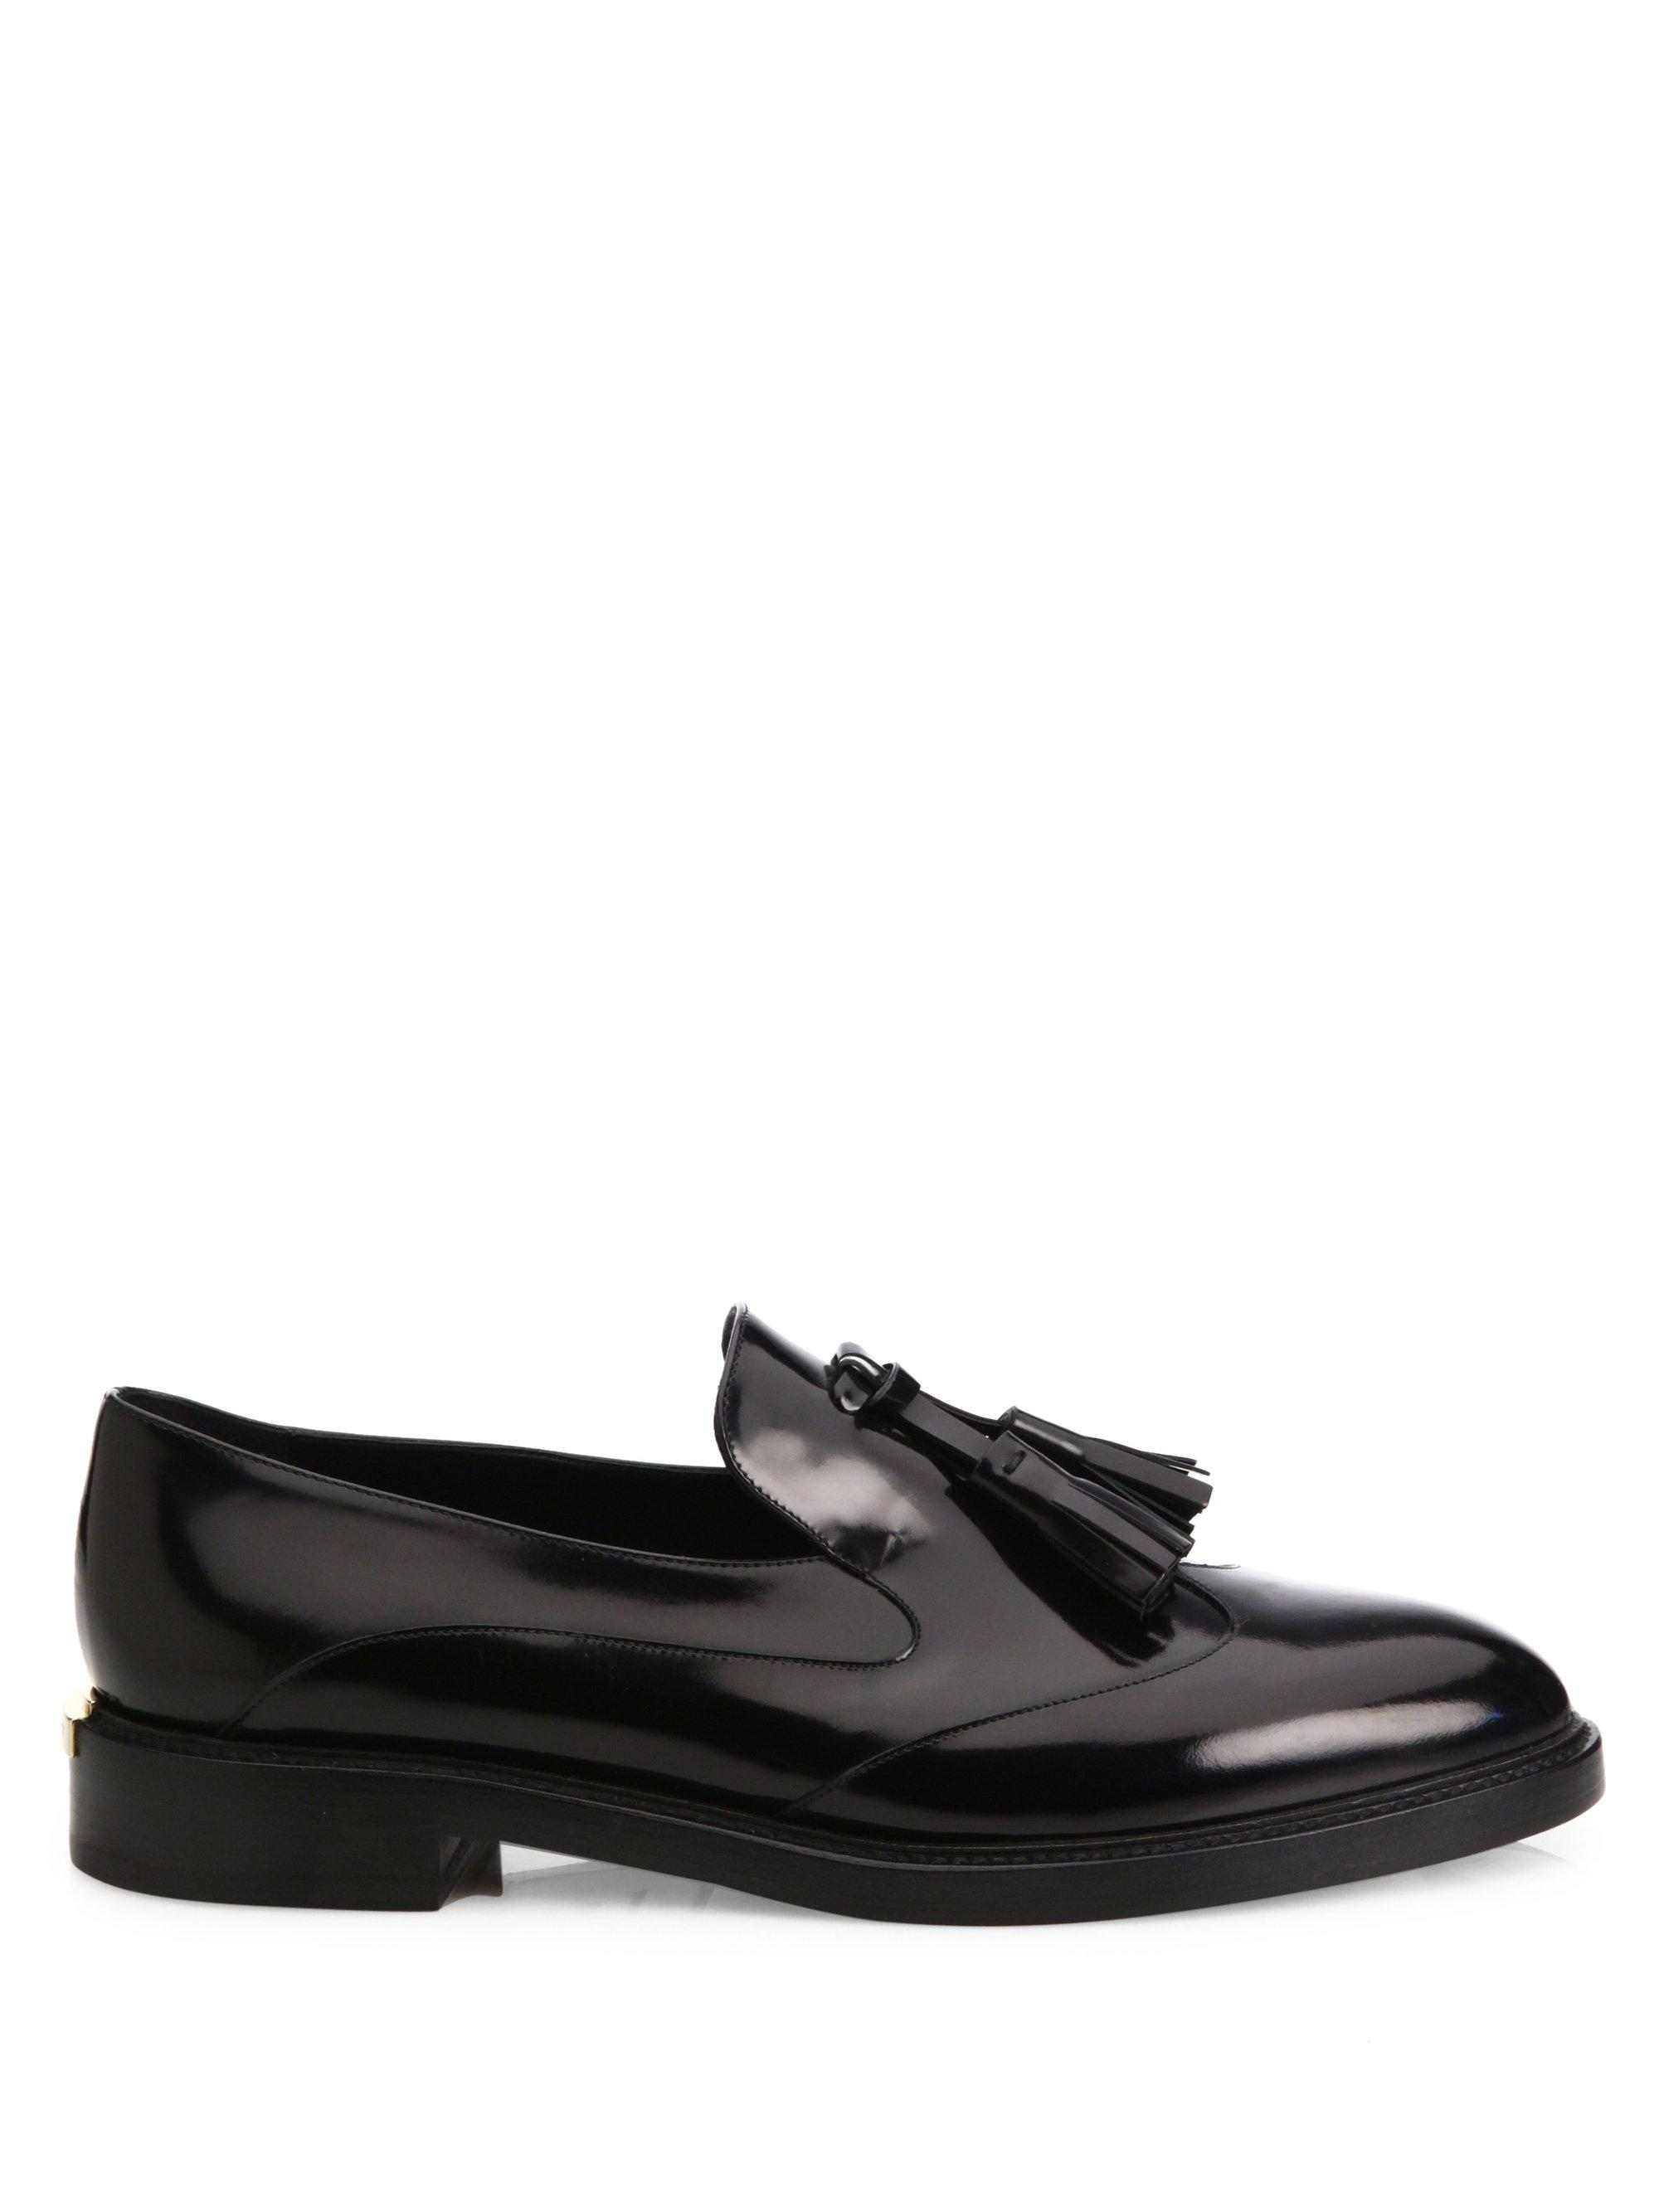 Burberry - Black Halsmoor Patent Leather Tassel Loafers - Lyst. View  fullscreen